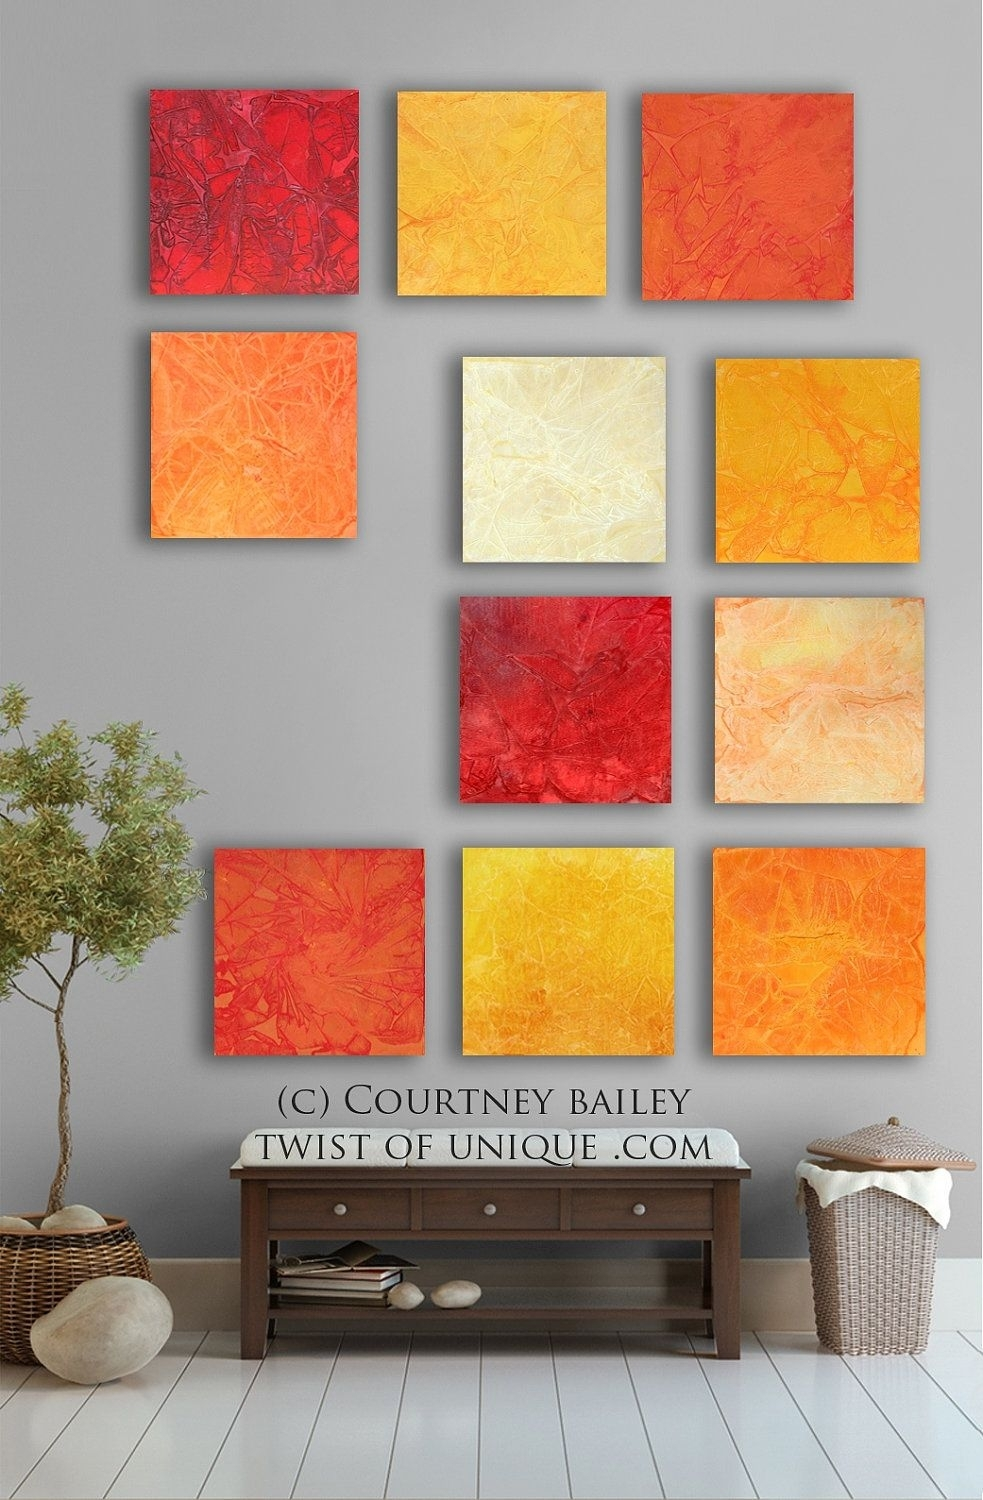 Bright Abstract Art, 11 Square Custom Abstract Wall Art, Large With Best And Newest Bright Abstract Wall Art (View 9 of 20)